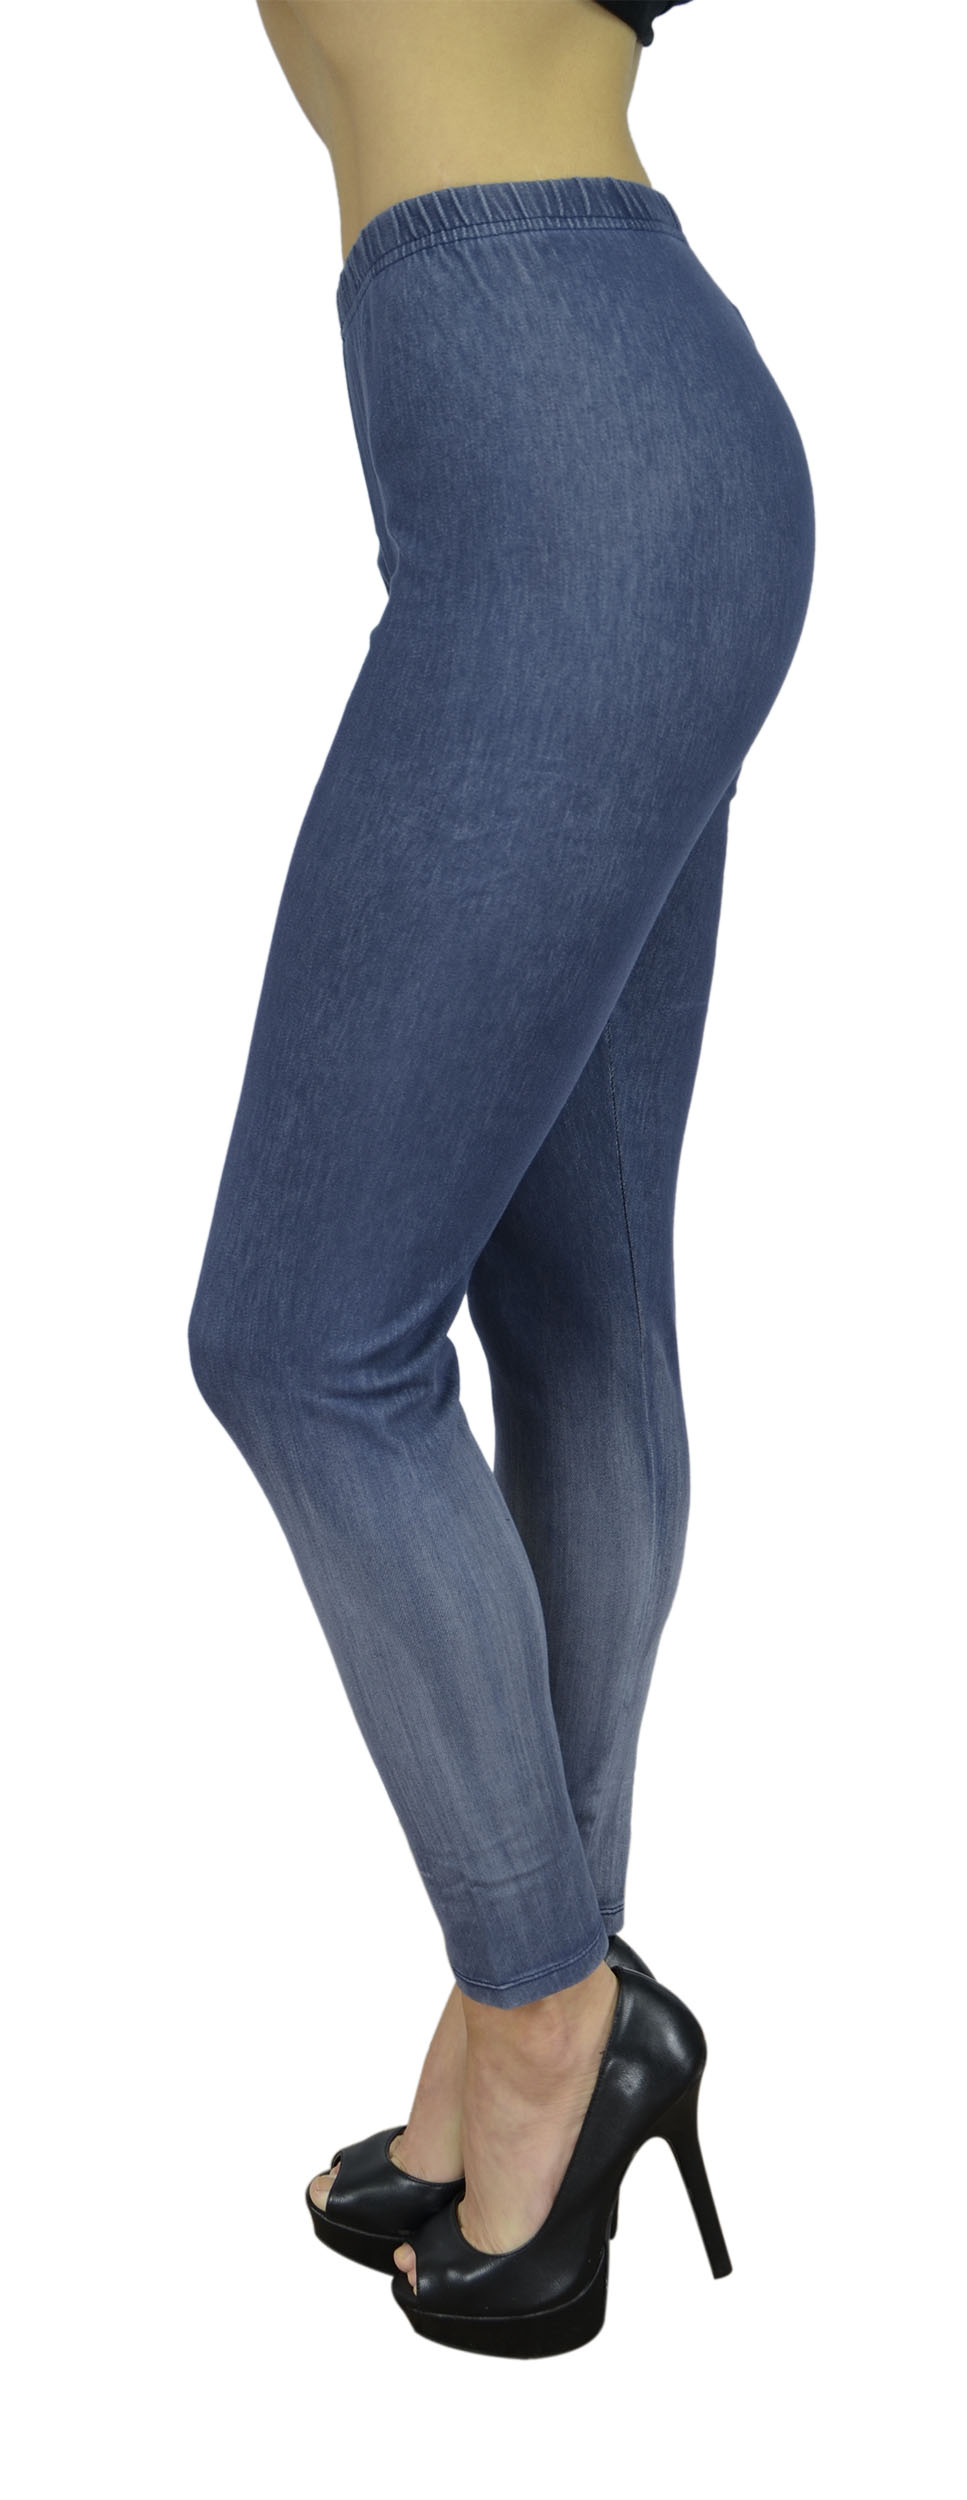 Belle Donne Women's Legging Jeggings Footless - Blue